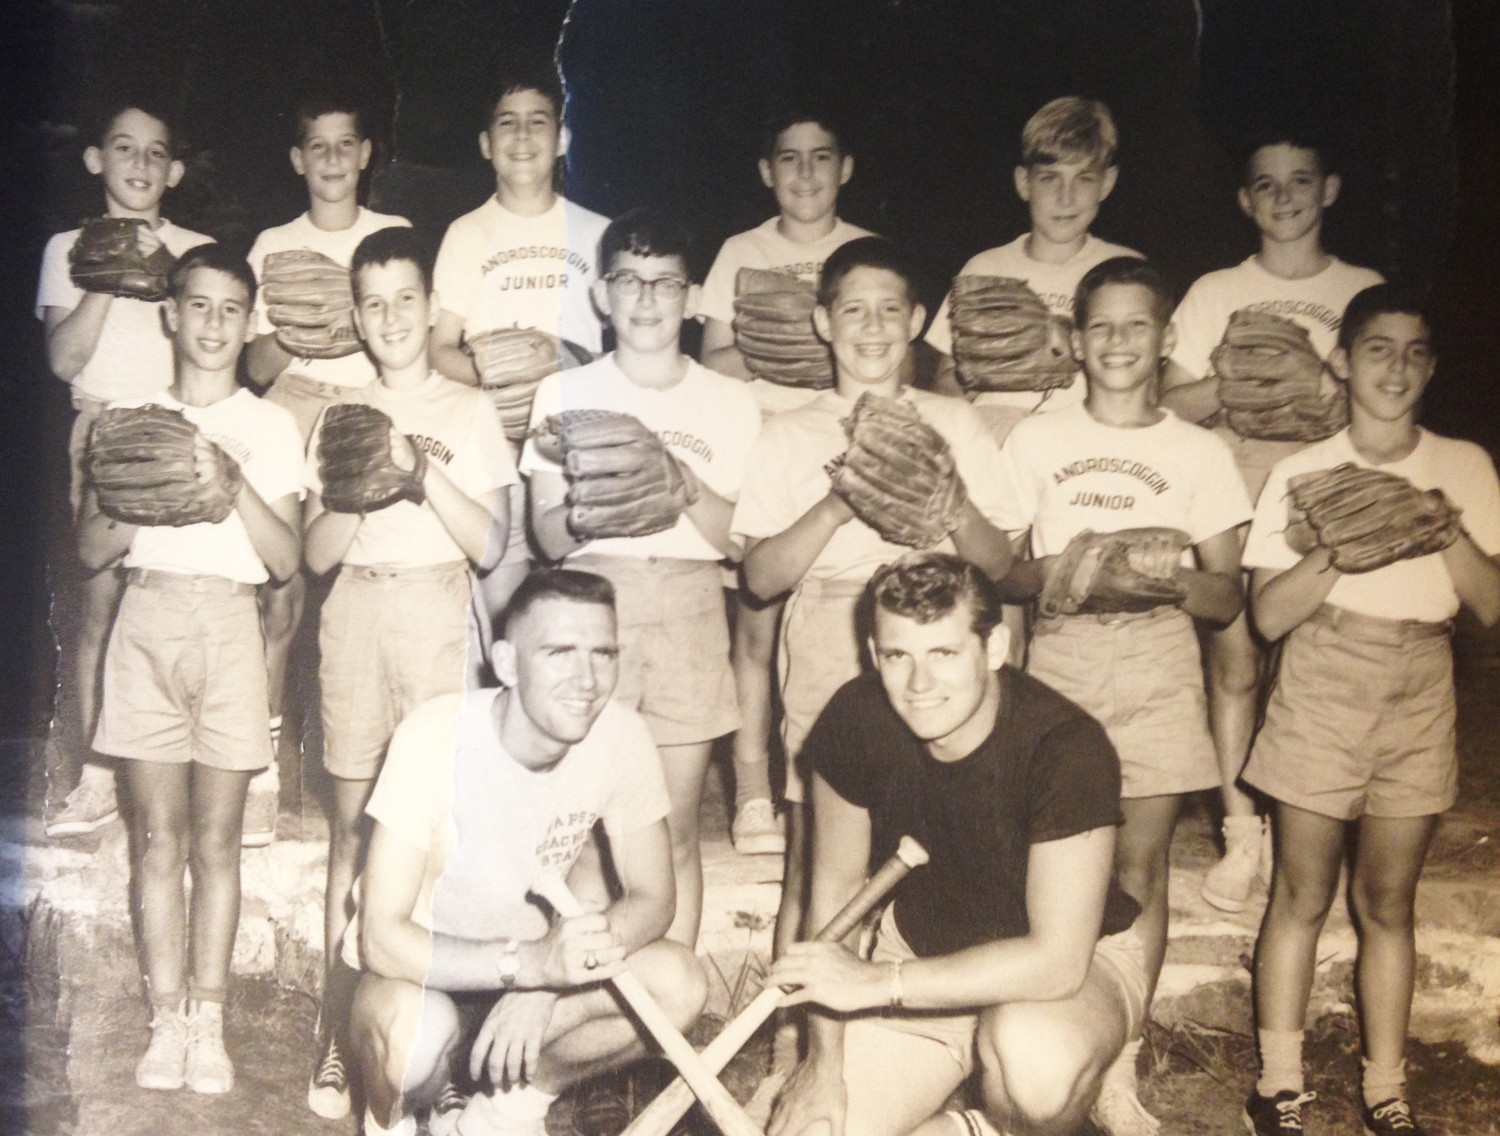 The undefeated Androscoggin Jr. baseball team from 1963: Jeff Lurie is the last player on the right in the first row of ballplayers; Richard Asinof is the fourth player from right in the first row of ballplayers; Bruce Berman is the third player from right in the second row of ballplayers.